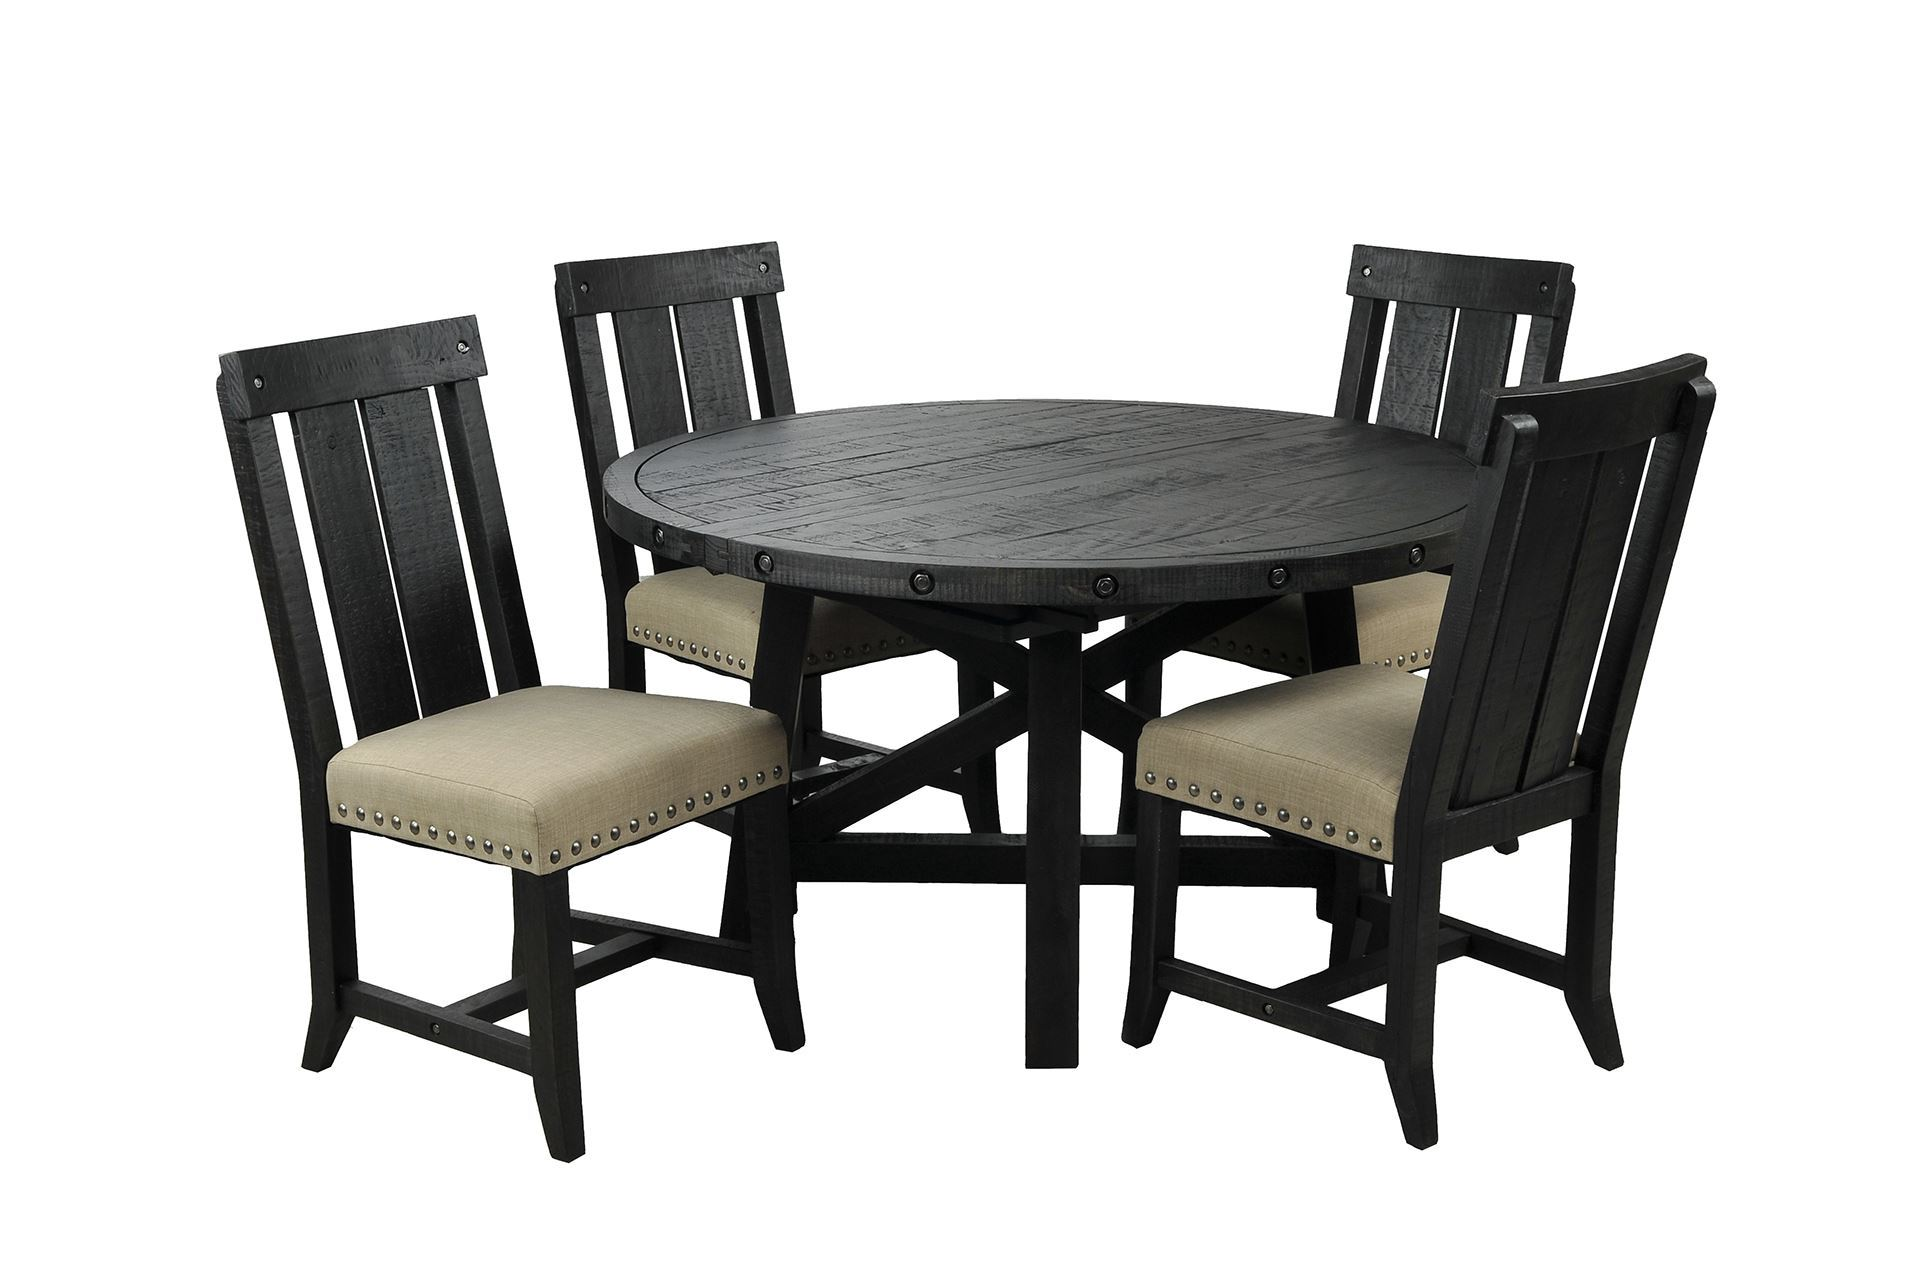 Superb img of Jaxon 5 Piece Round Dining Set W/Wood Chairs Living Spaces with #796E52 color and 1911x1288 pixels